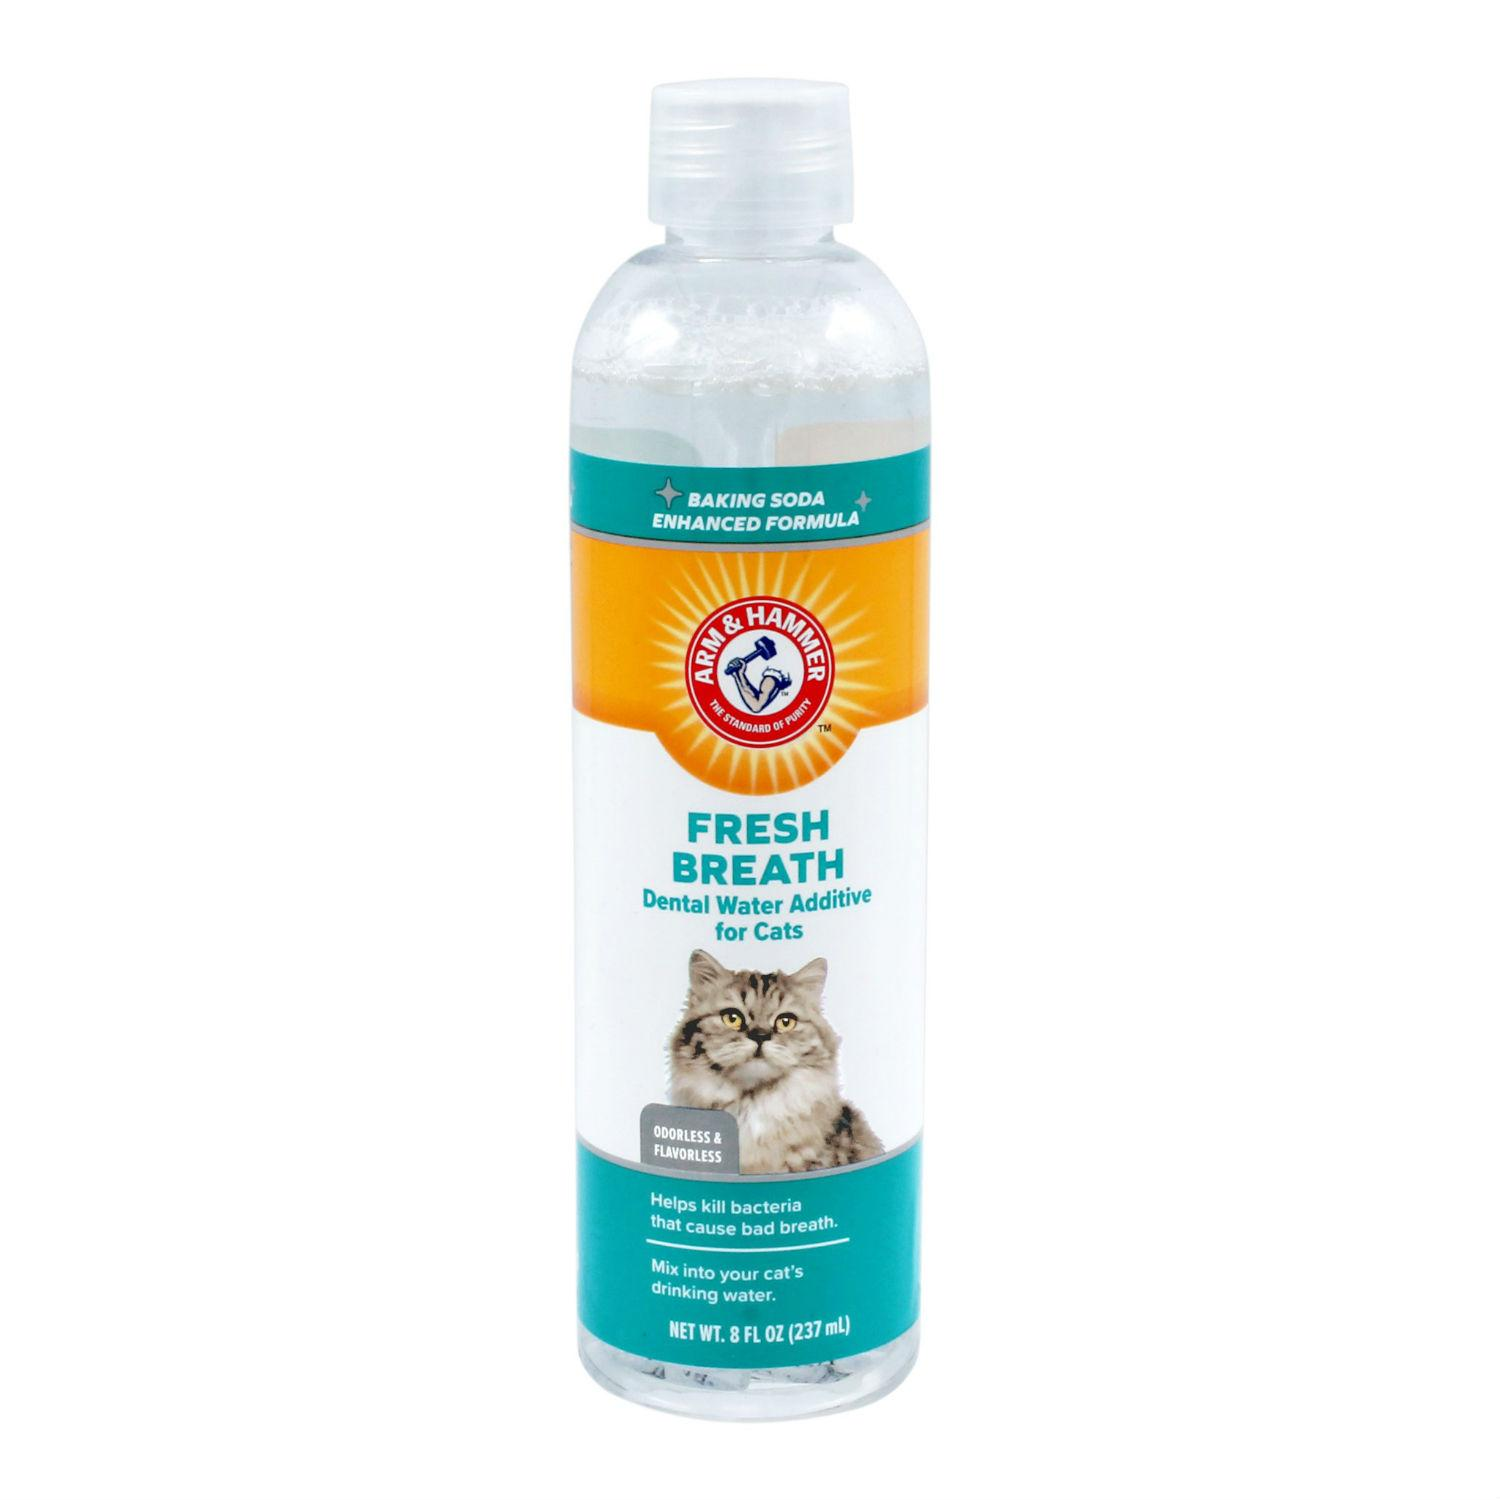 Arm & Hammer Dental Fresh Breath Water Additive For Cats - Mint Flavor